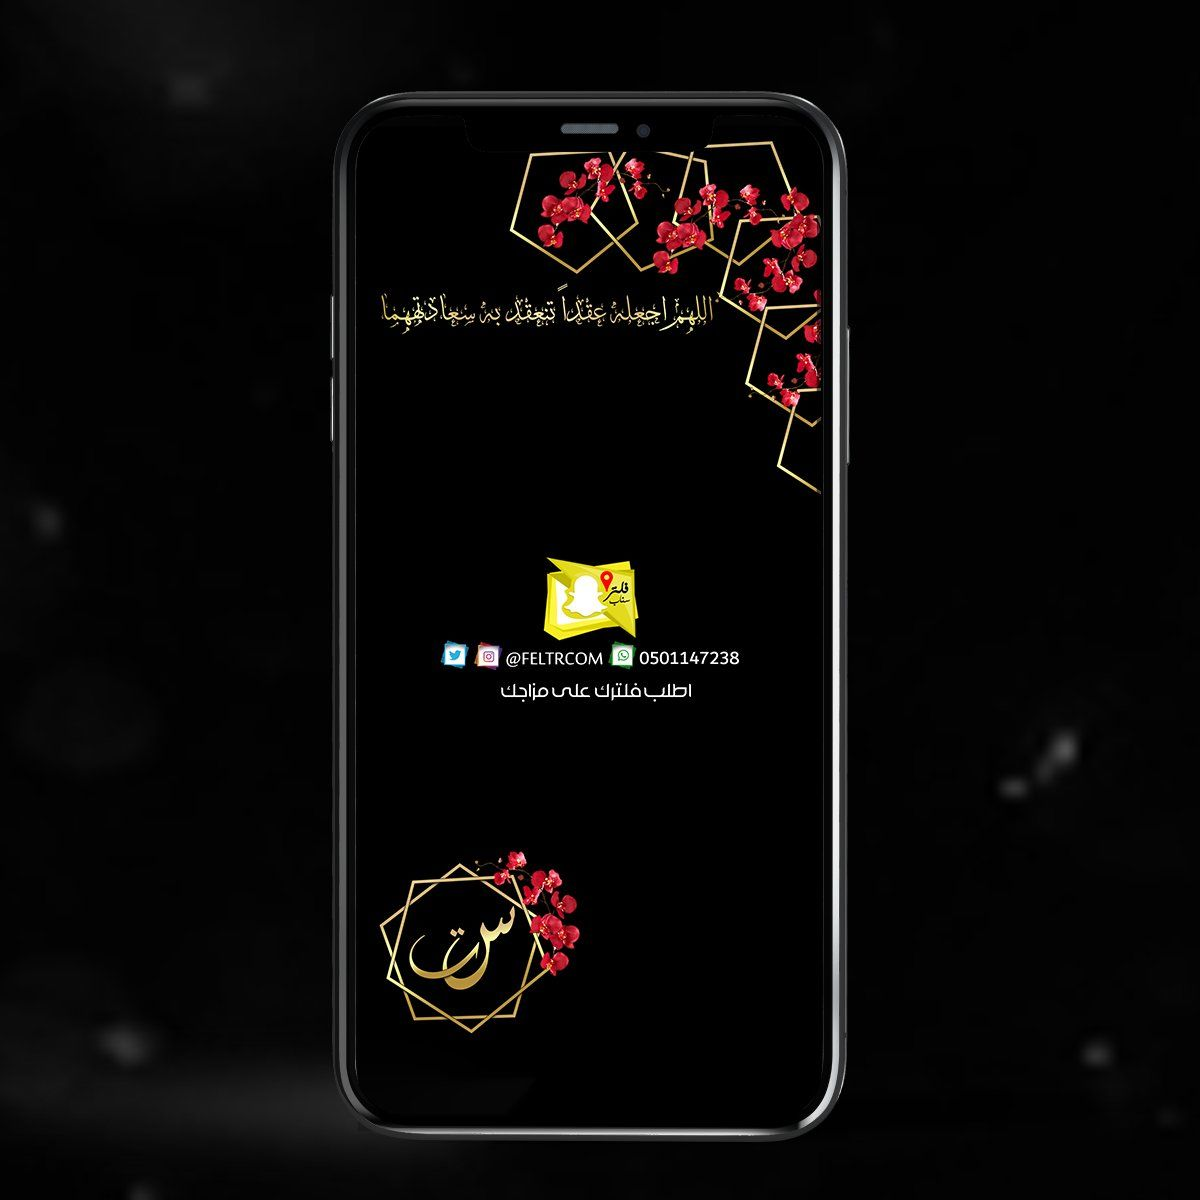 فلتر سناب Filter Snap Feltrcom تويتر Snap Filters Cool Photos Aesthetic Pictures